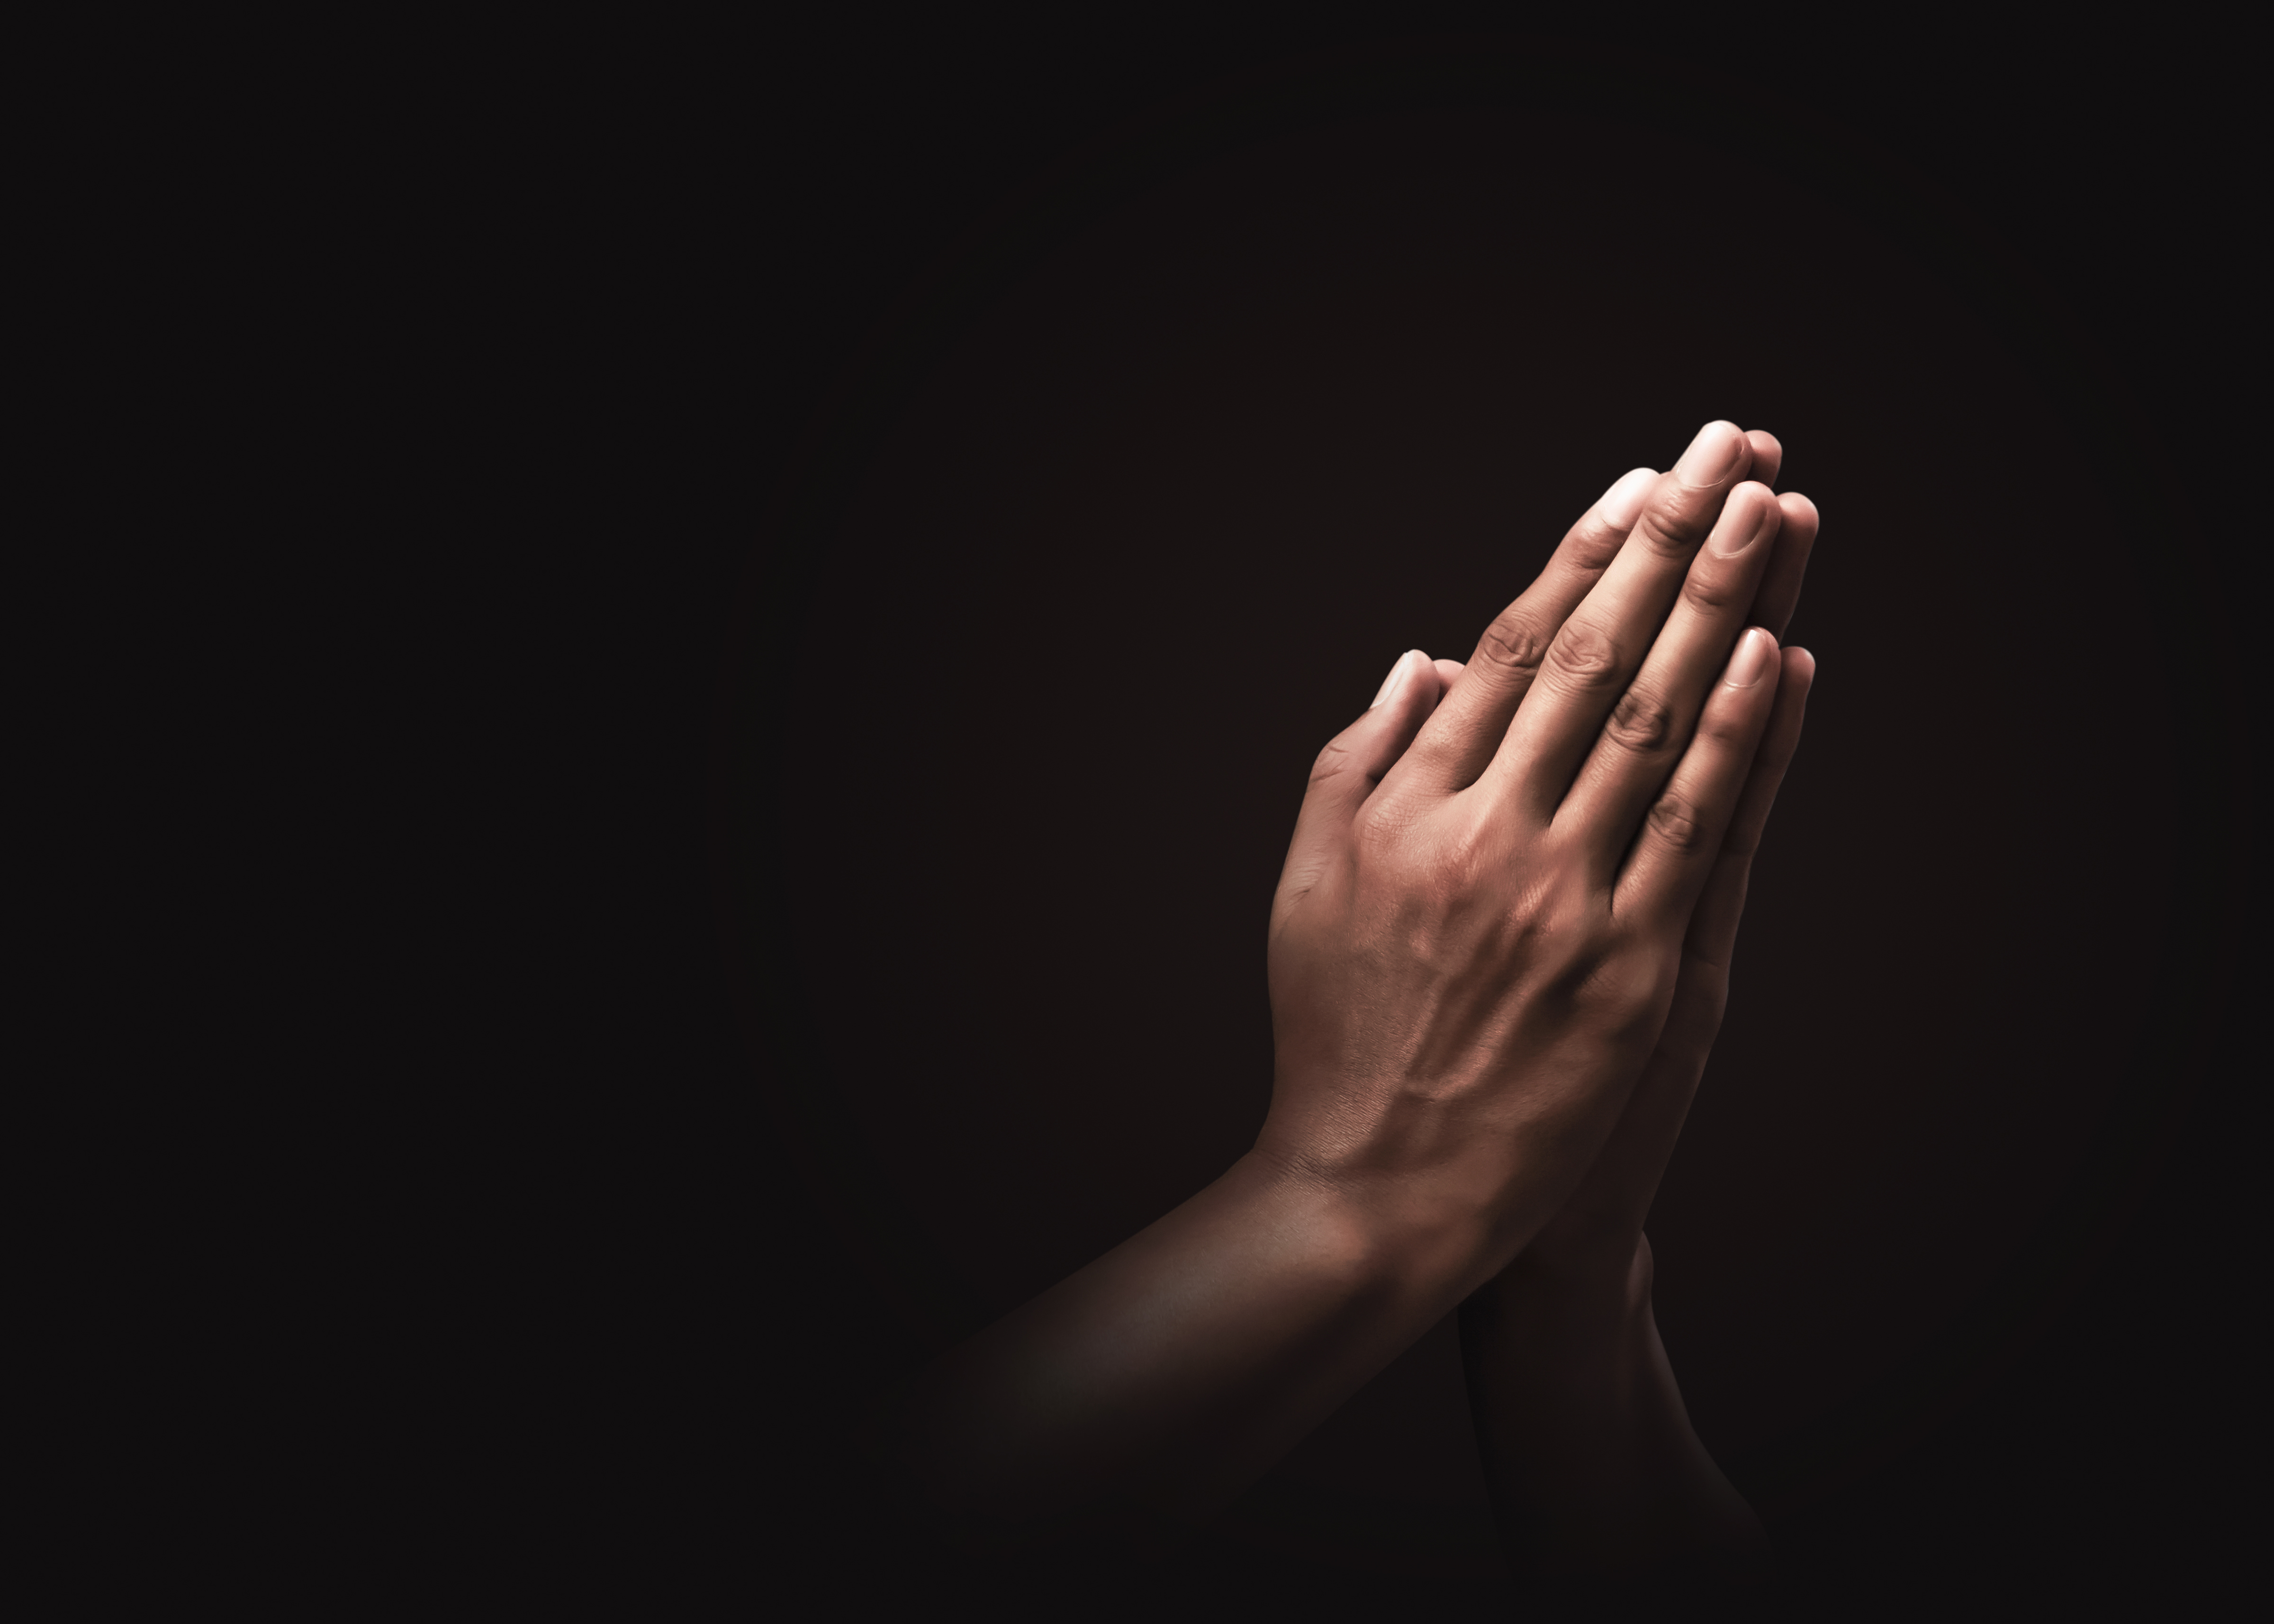 Praying Hands 4